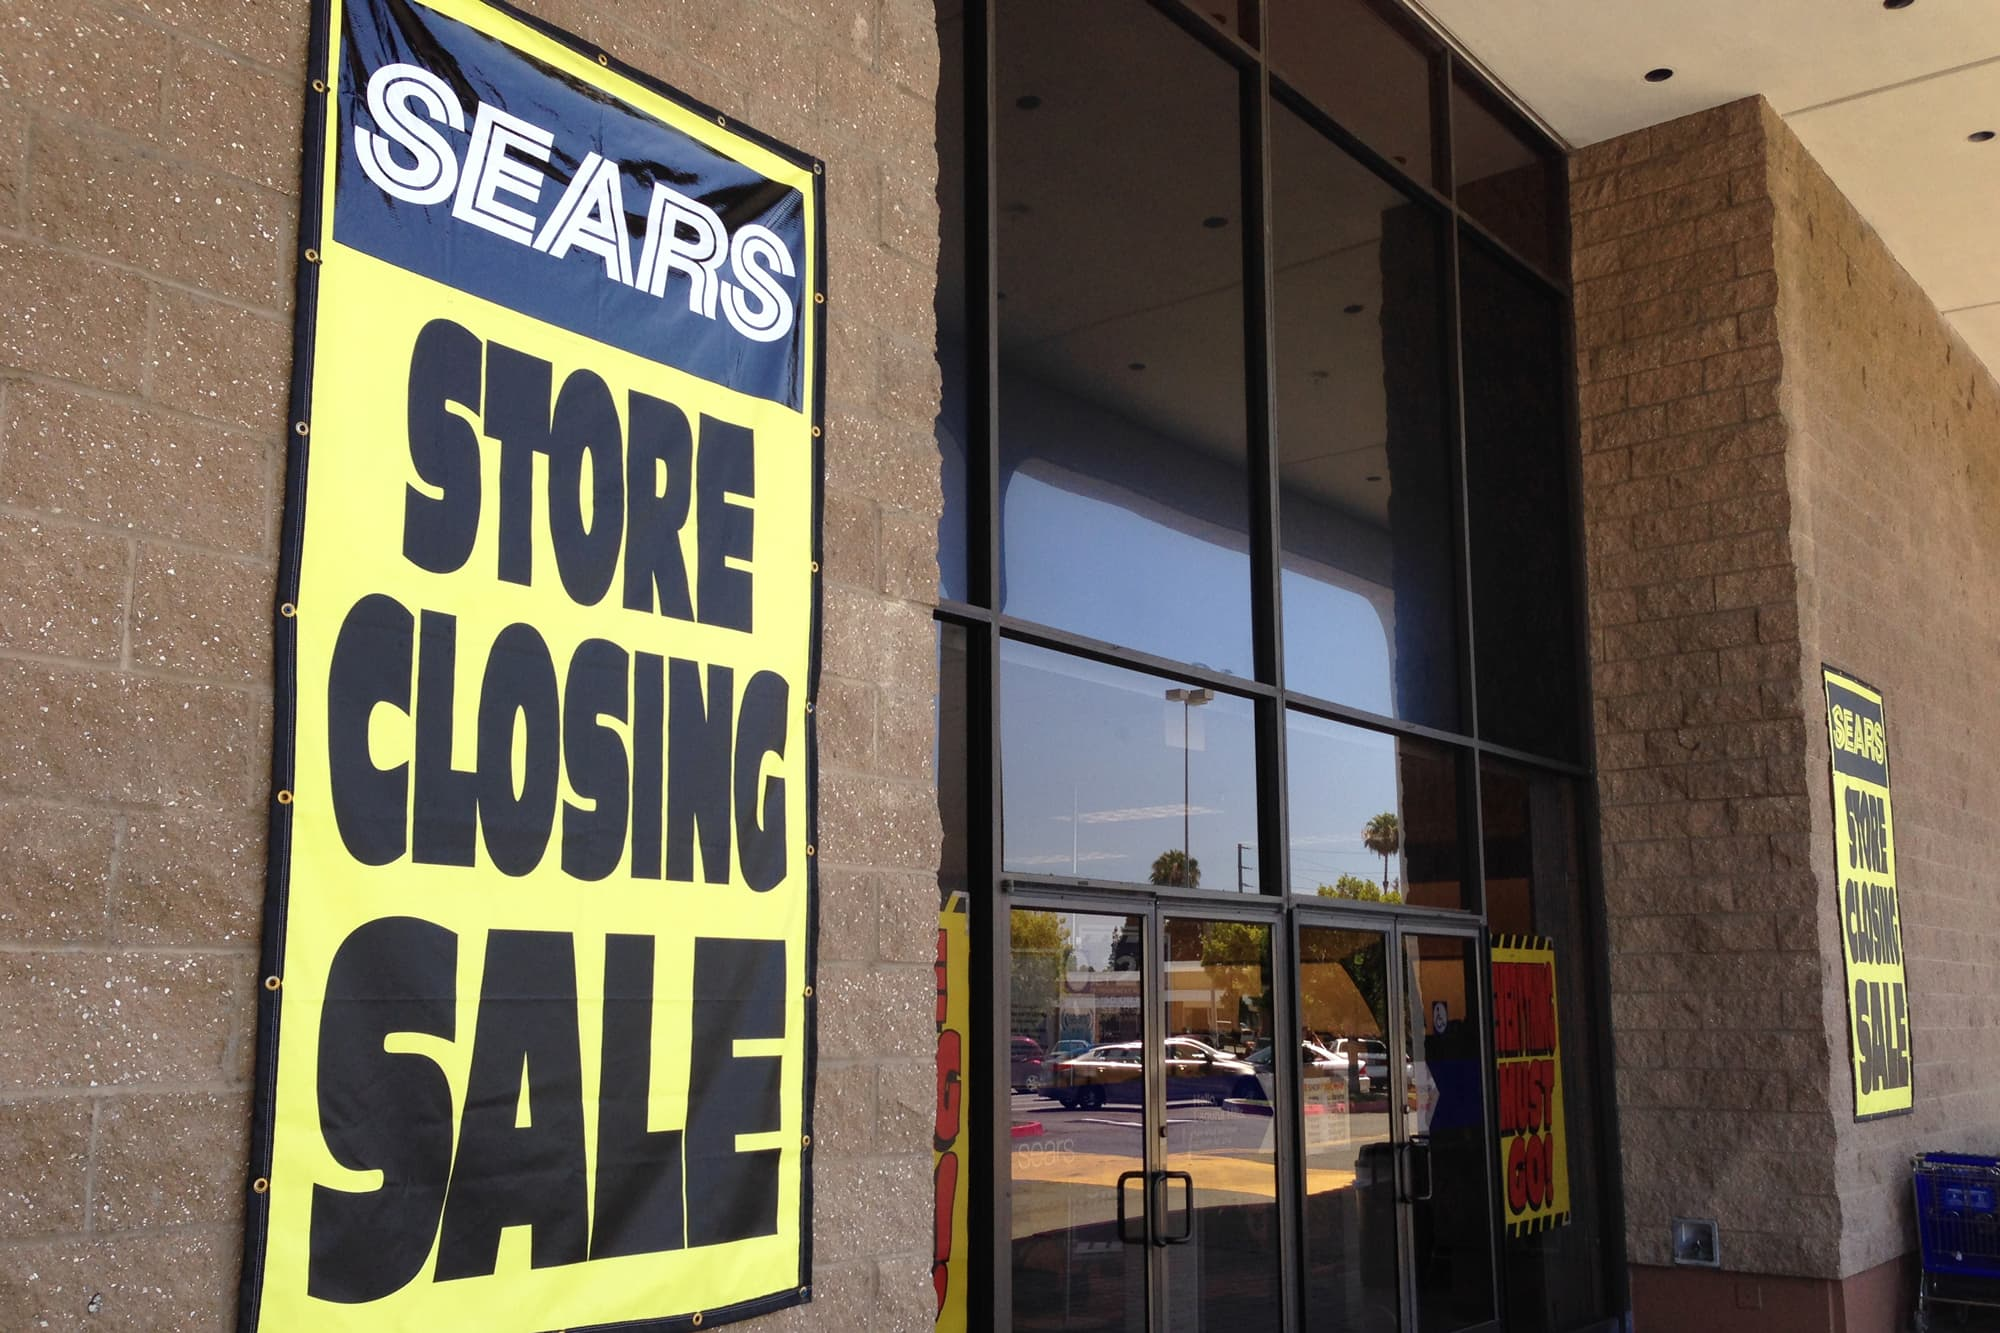 Sears is closing over 100 more stores